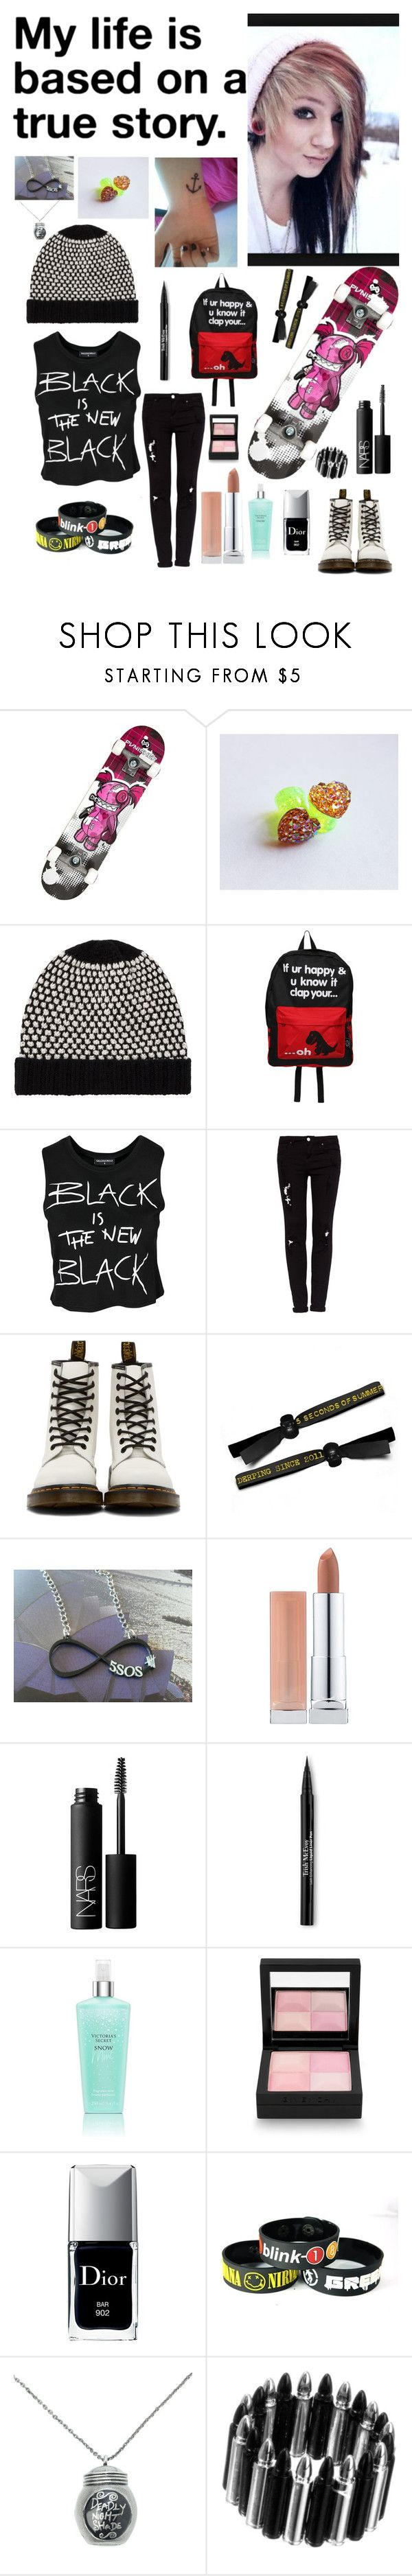 """""Day out with the band and bitches"" - Summer"" by nationalnerd ❤ liked on Polyvore featuring Punisher, John Lewis, Goodie Two Sleeves, Sally&Circle, Pull&Bear, Dr. Martens, Maybelline, NARS Cosmetics, Trish McEvoy and Victoria's Secret"